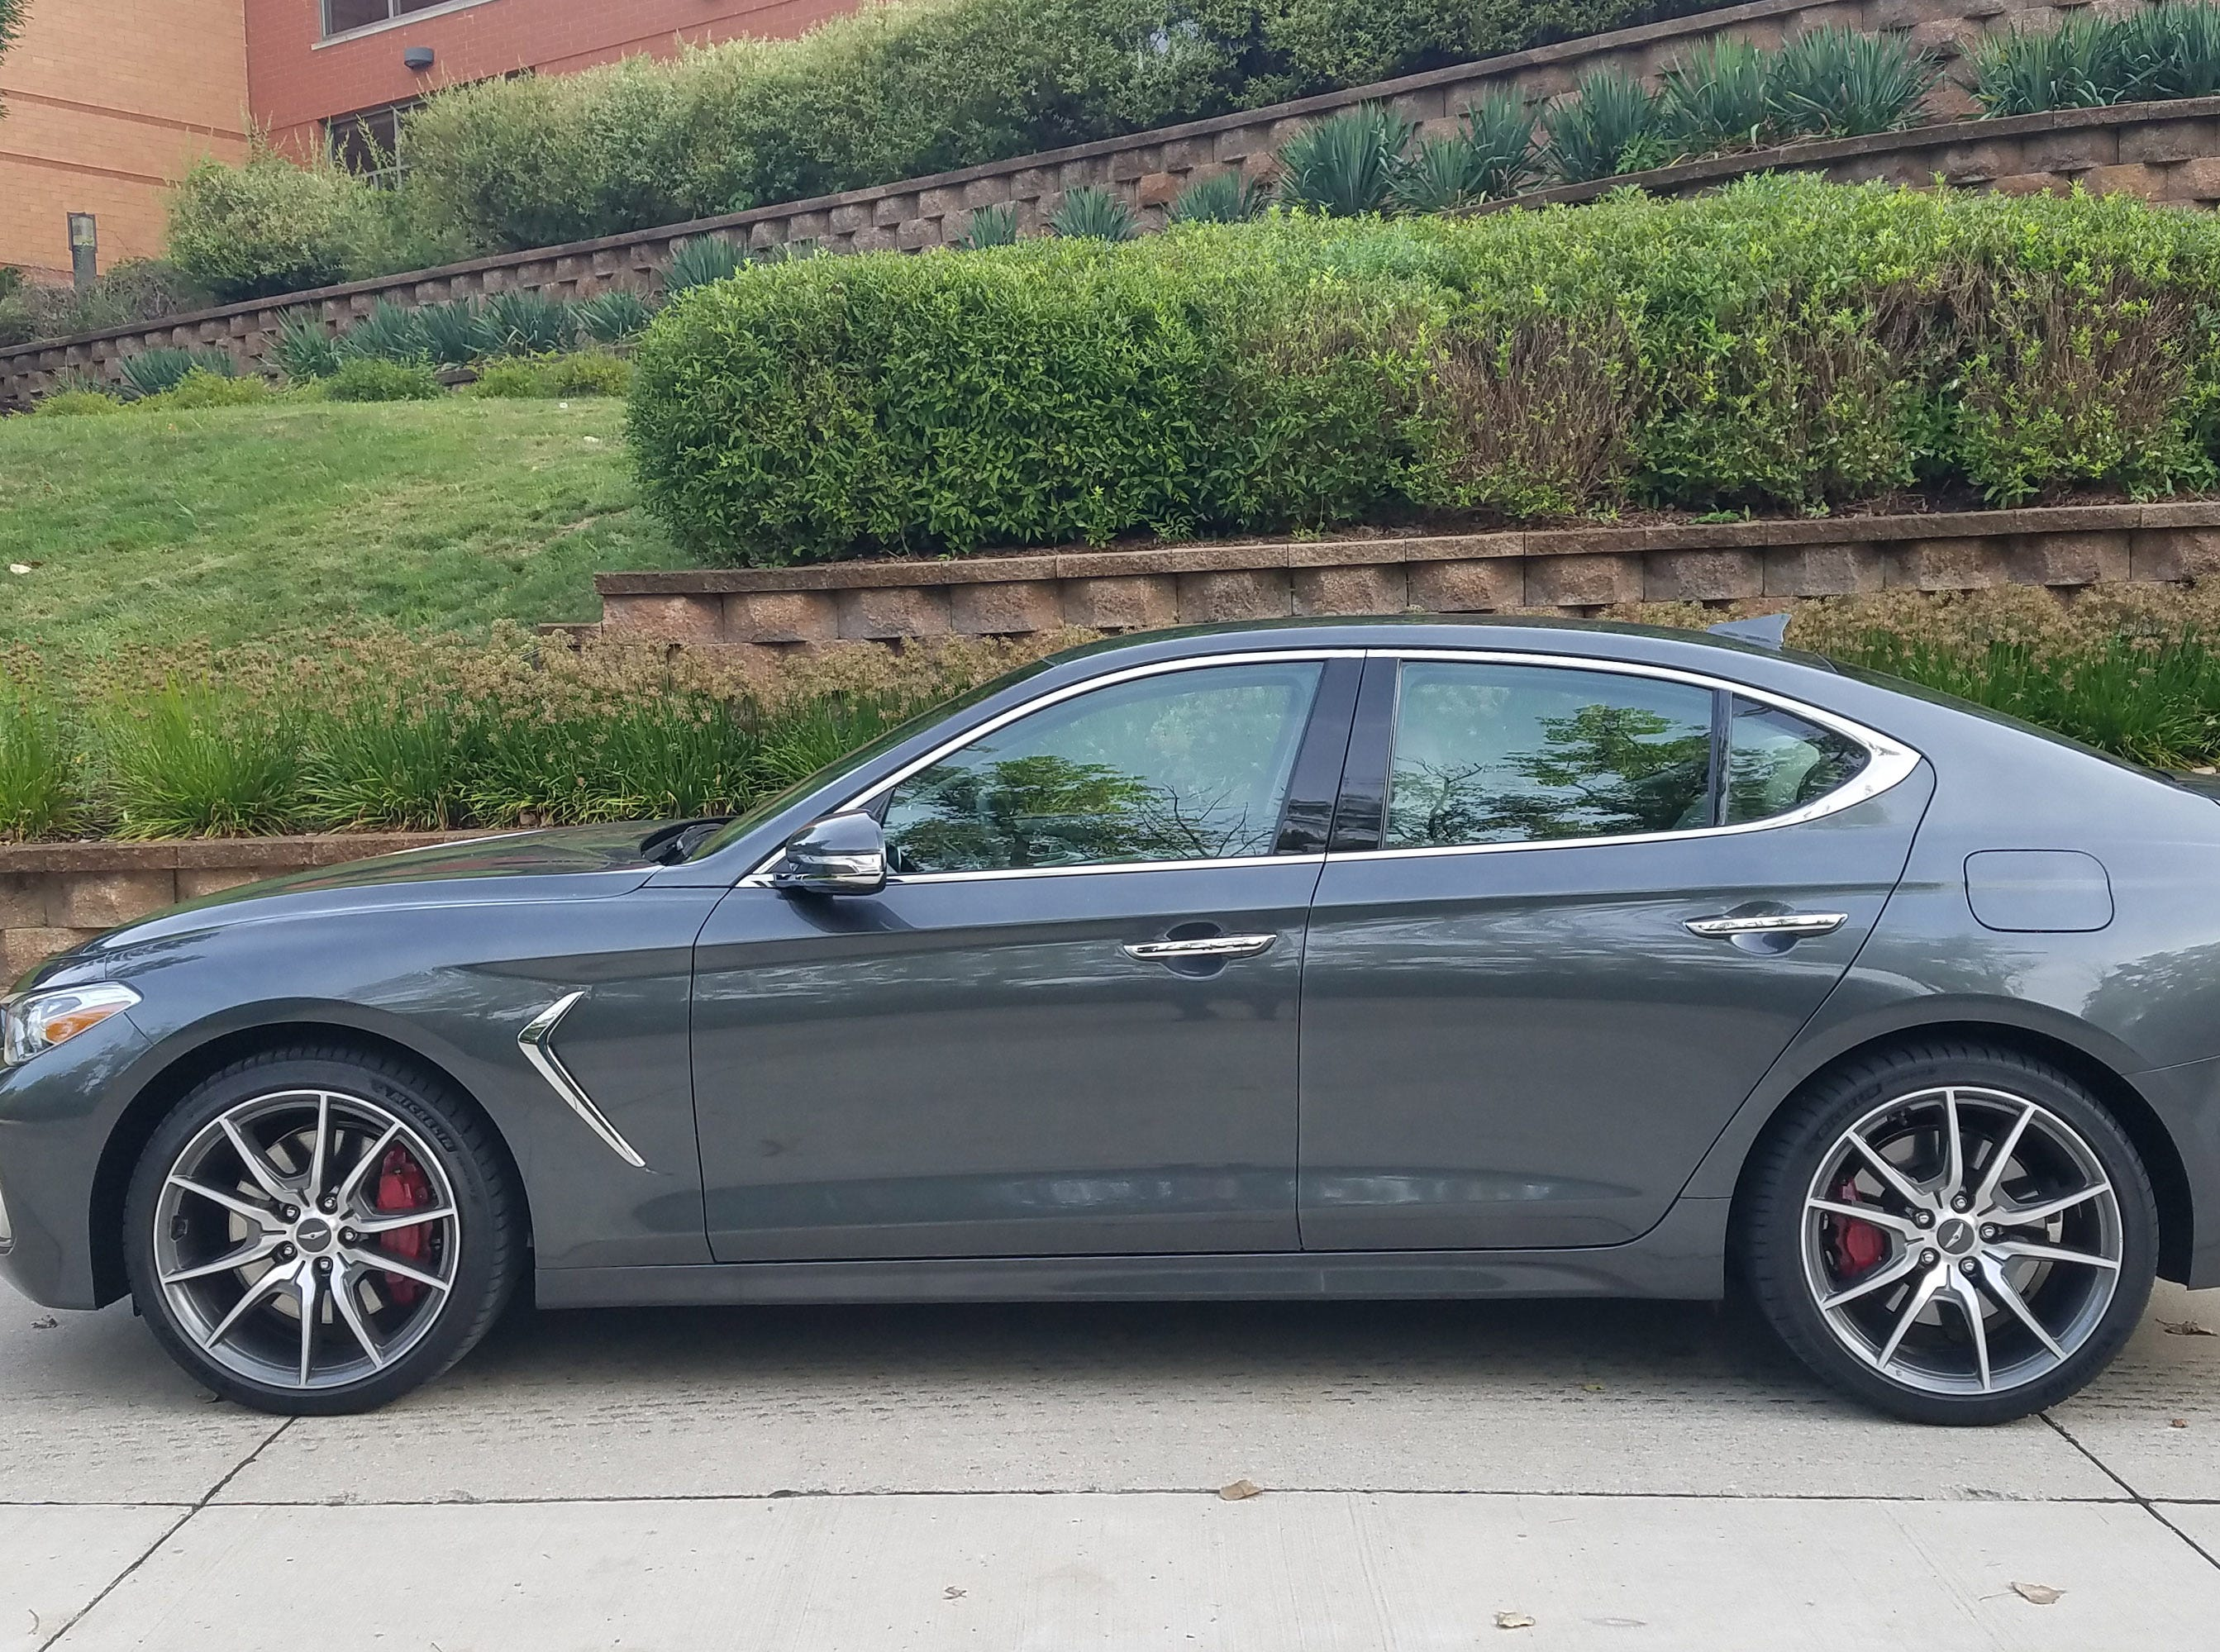 Rear-wheel-drive proportions. With its long hood and front wheels pushed to the front fascia, the 2019 Genesis G70 is undoubtedly fitted with a longitudinal engine and sporty DNA. But it impresses as a smooth, not overly stiff, daily driver.